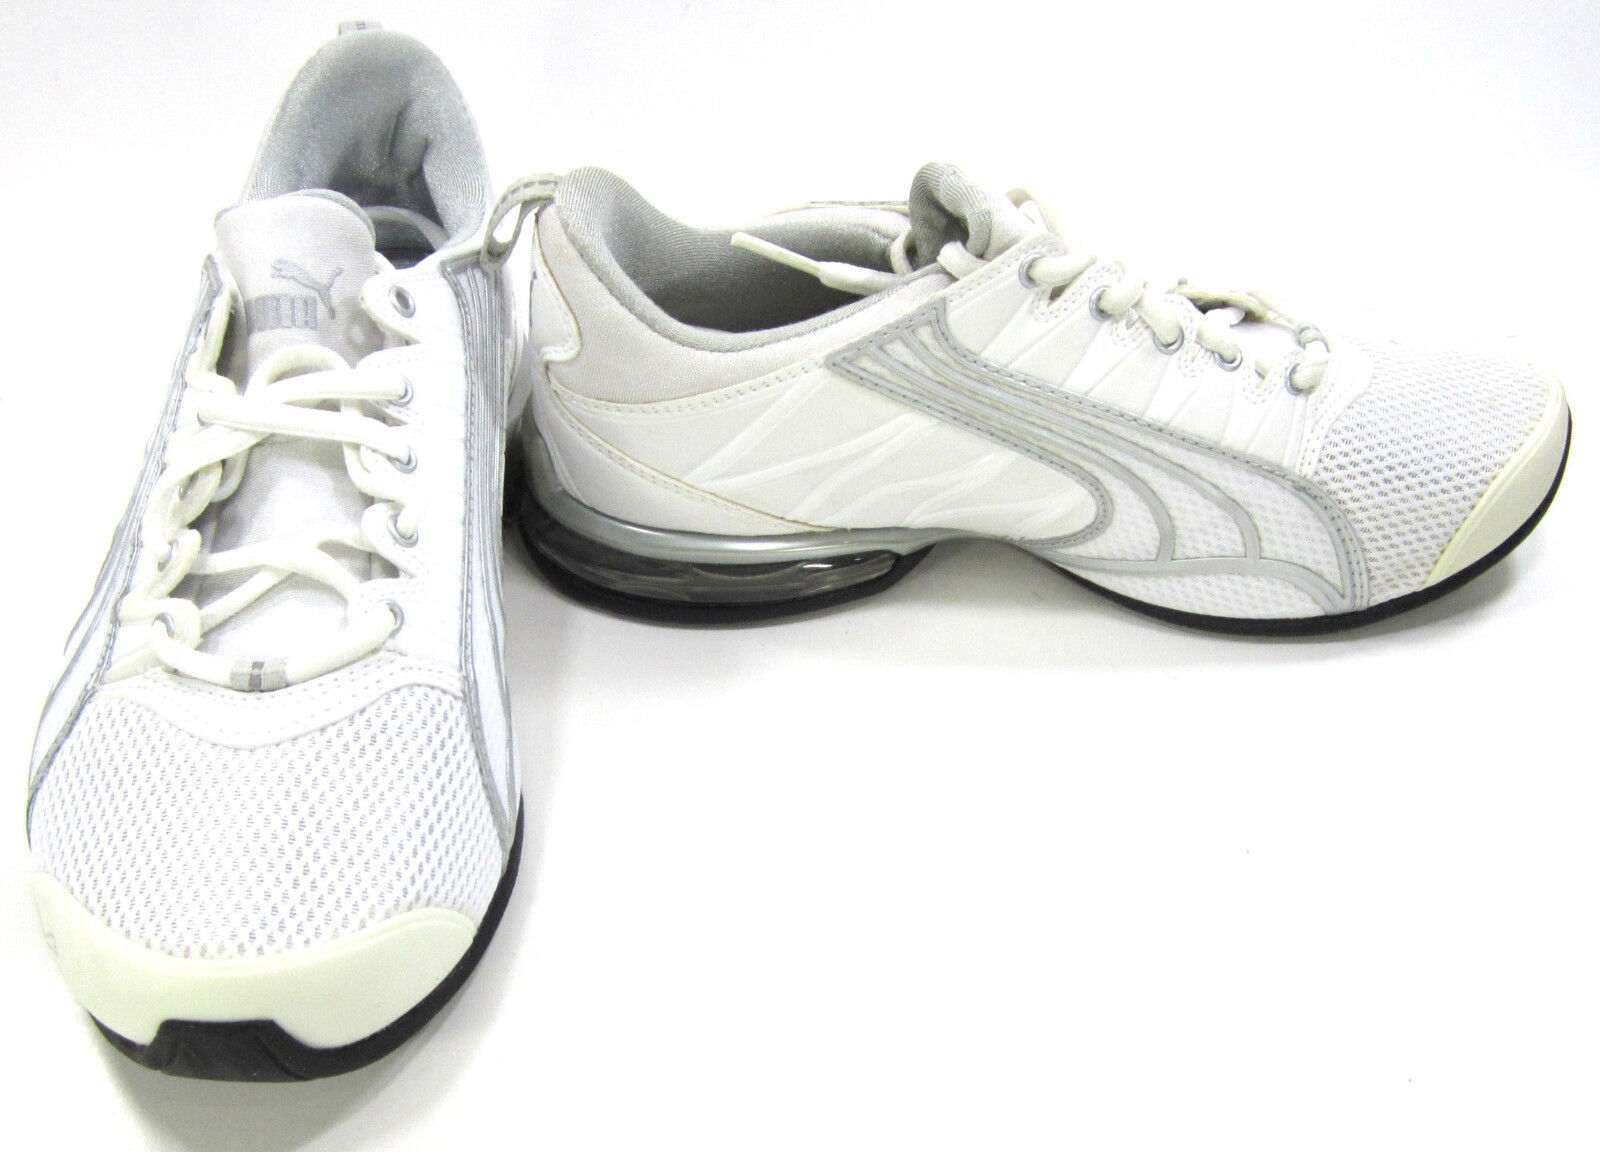 Puma Shoes Voltaic 2 Athletic White/Silver Sneakers Womens 6